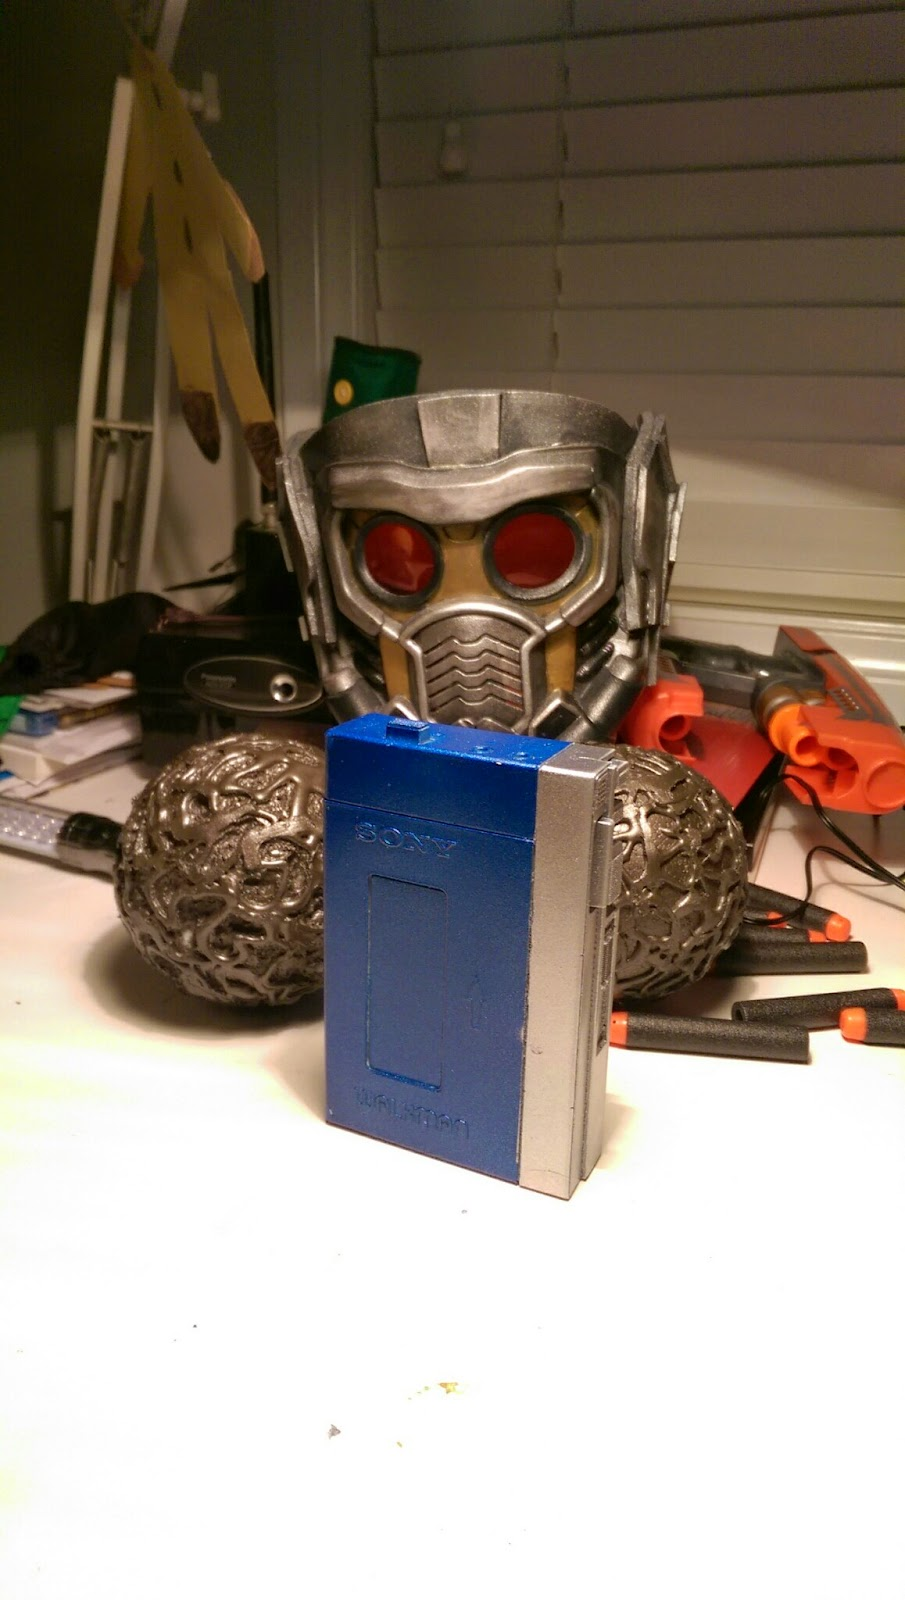 Guardians of the Galaxy Star Lord helmet, orb, Walkman